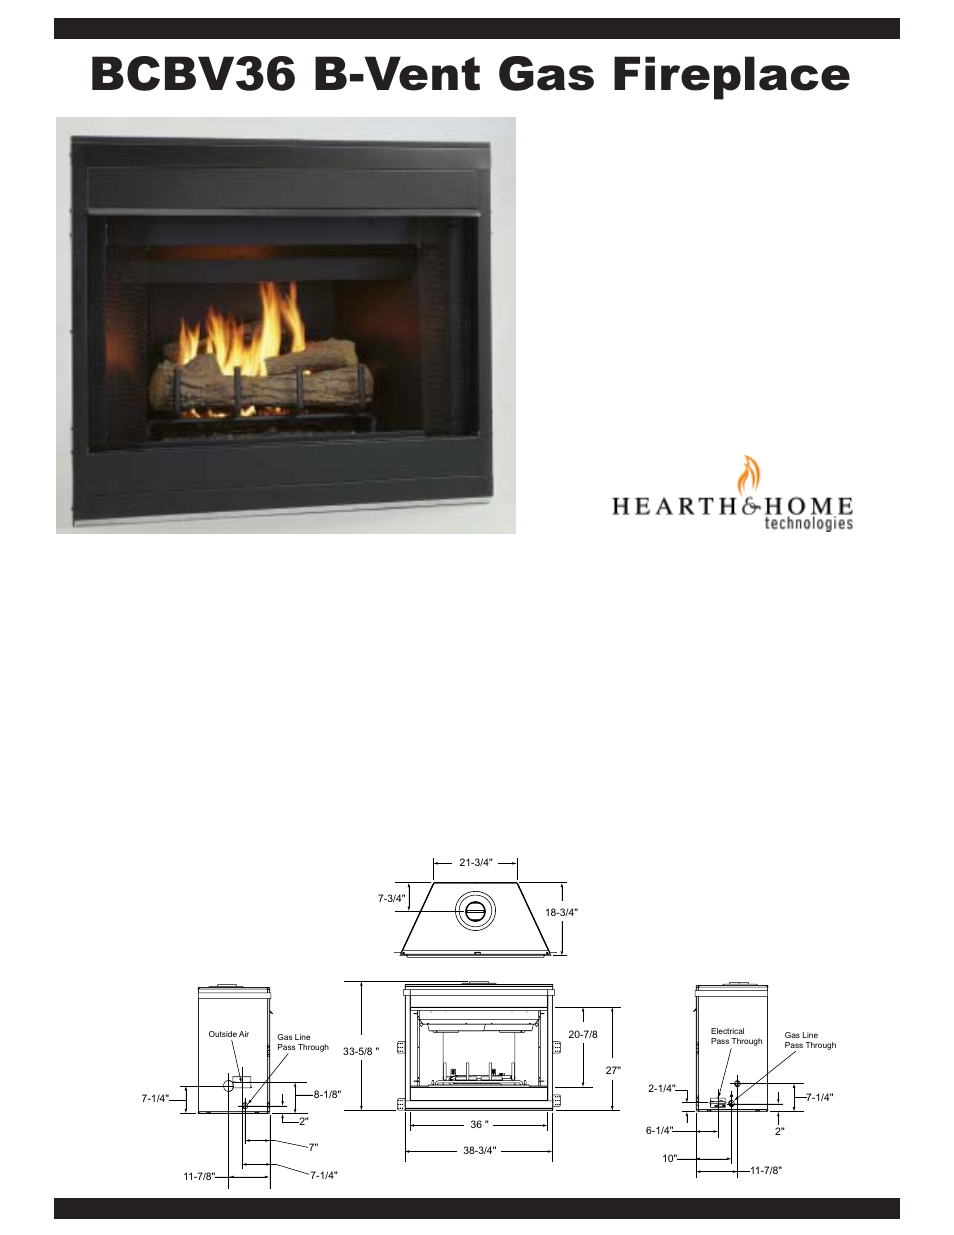 Hearth and Home Technologies B-Vent Gas Fireplace BCBV36 User ...